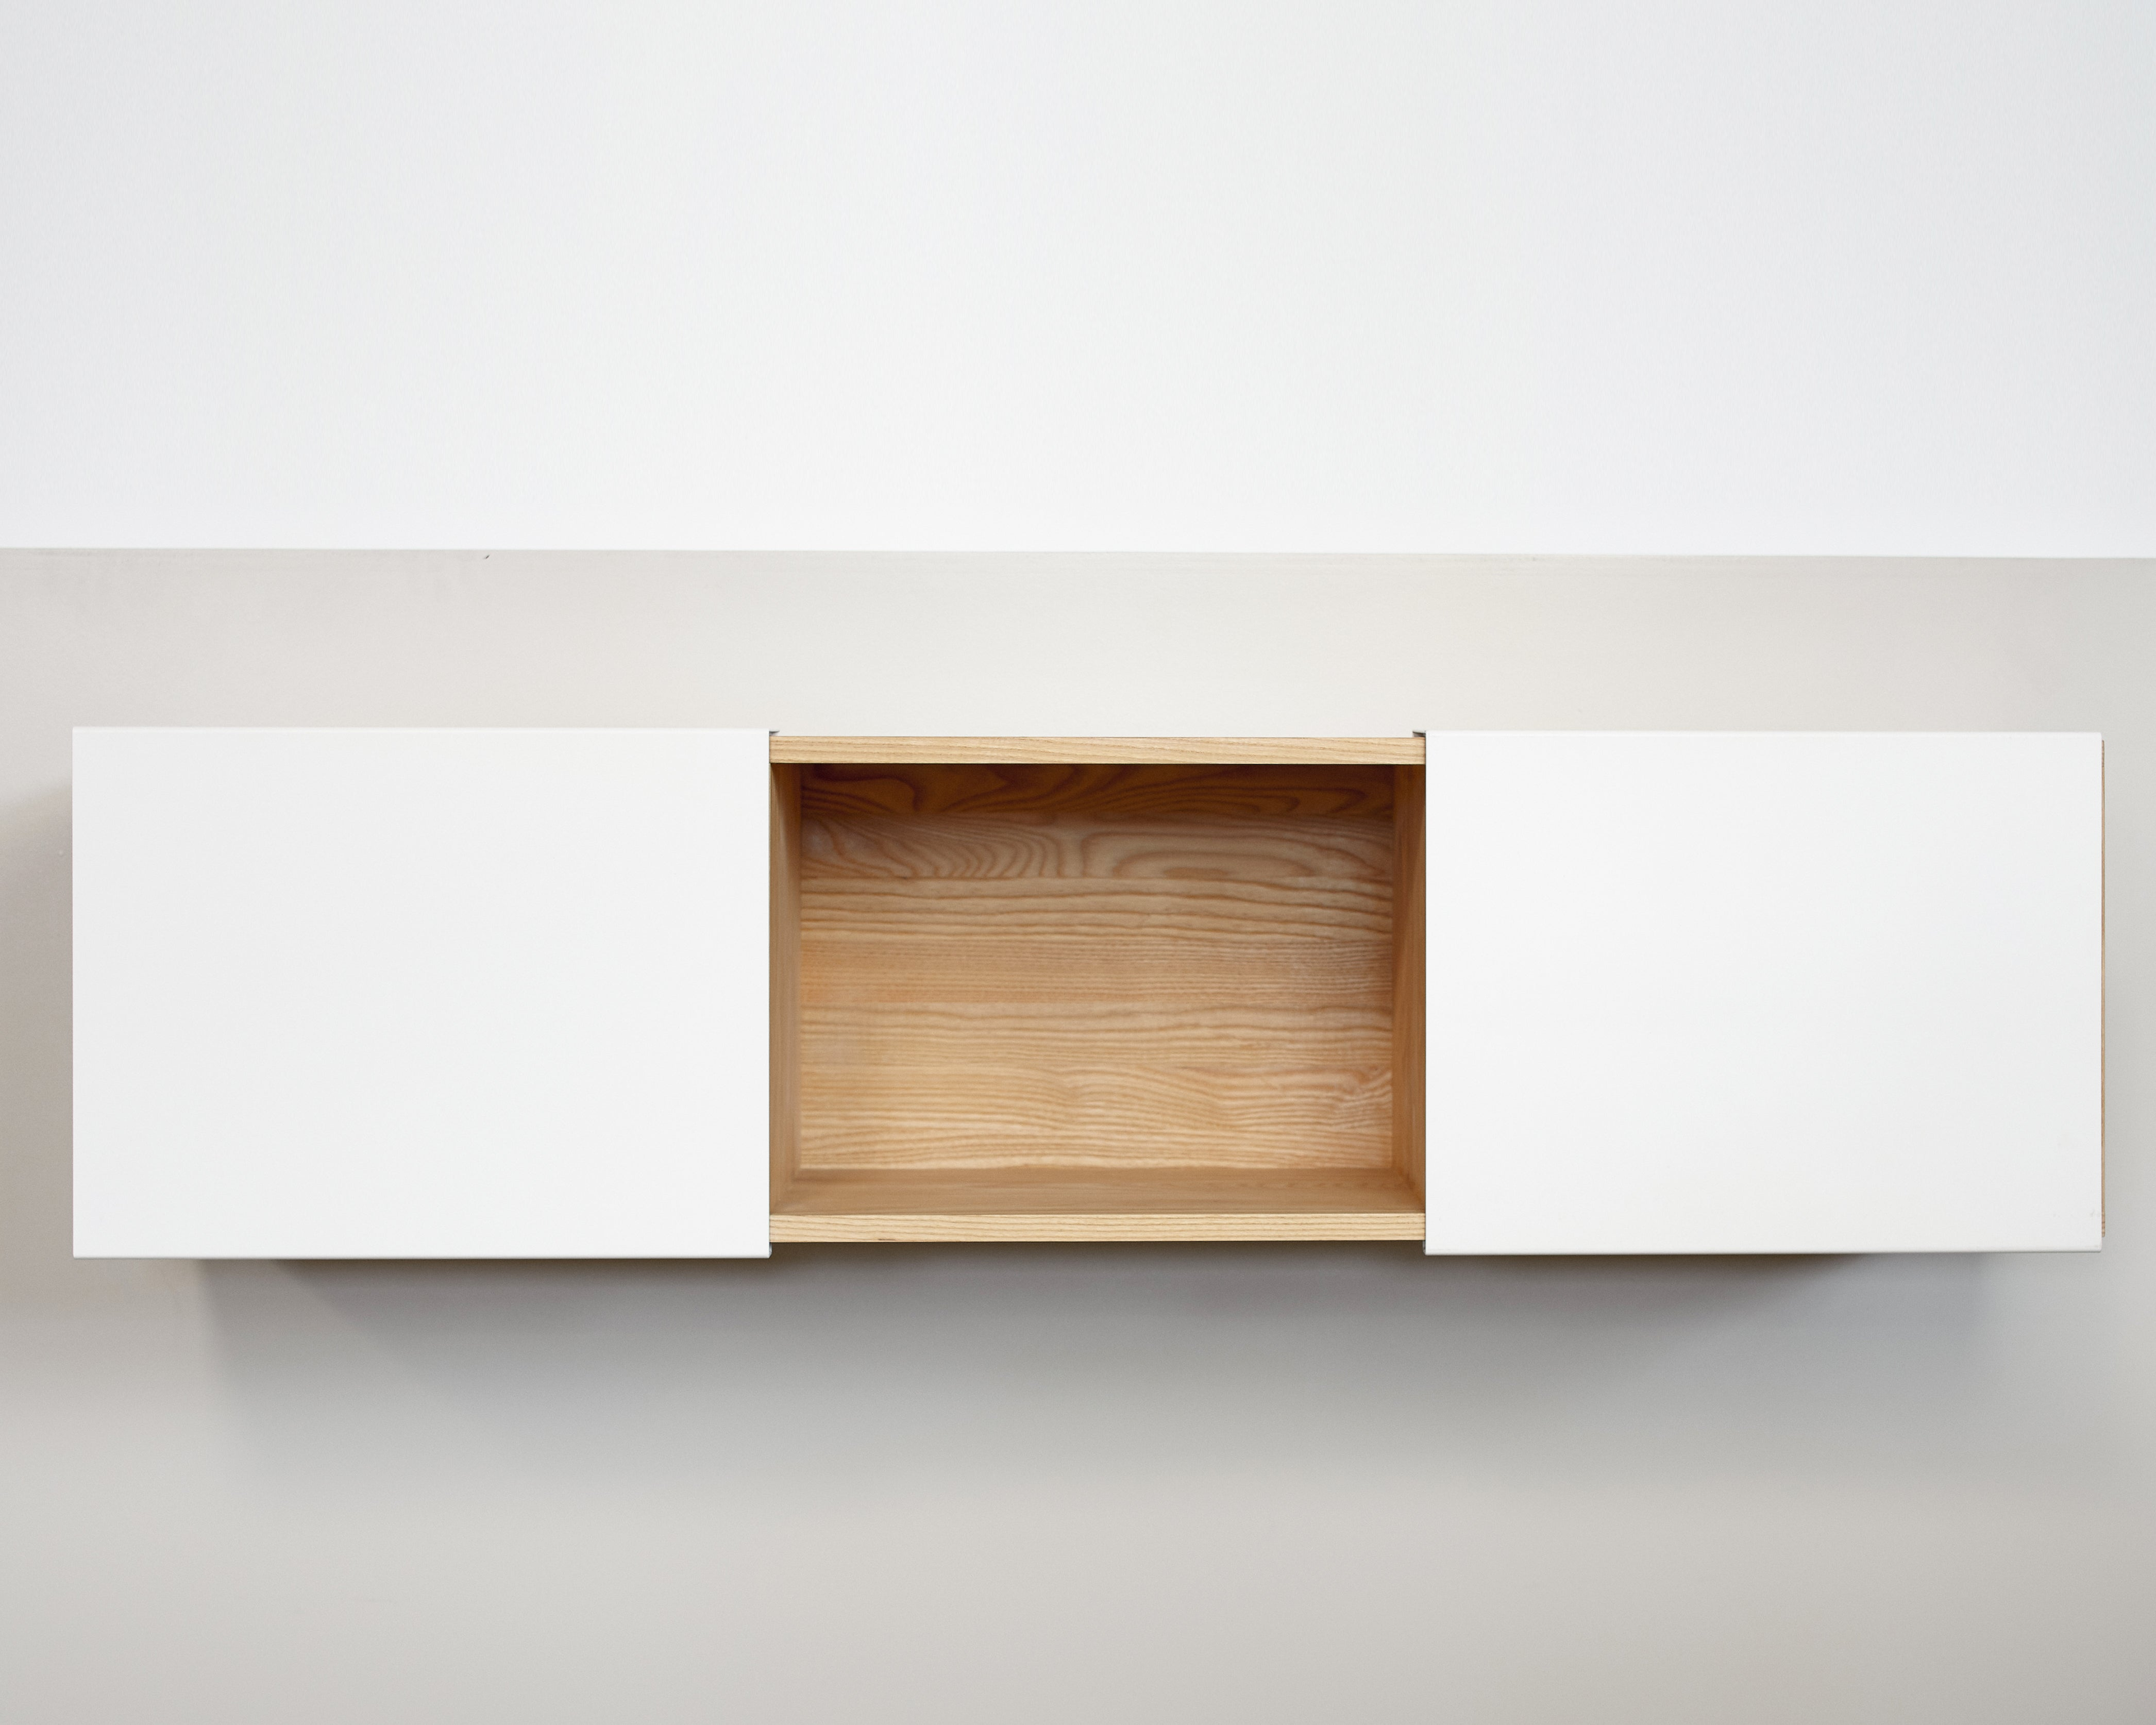 3X Wall Mounted Shelf- White Ash, White Panel